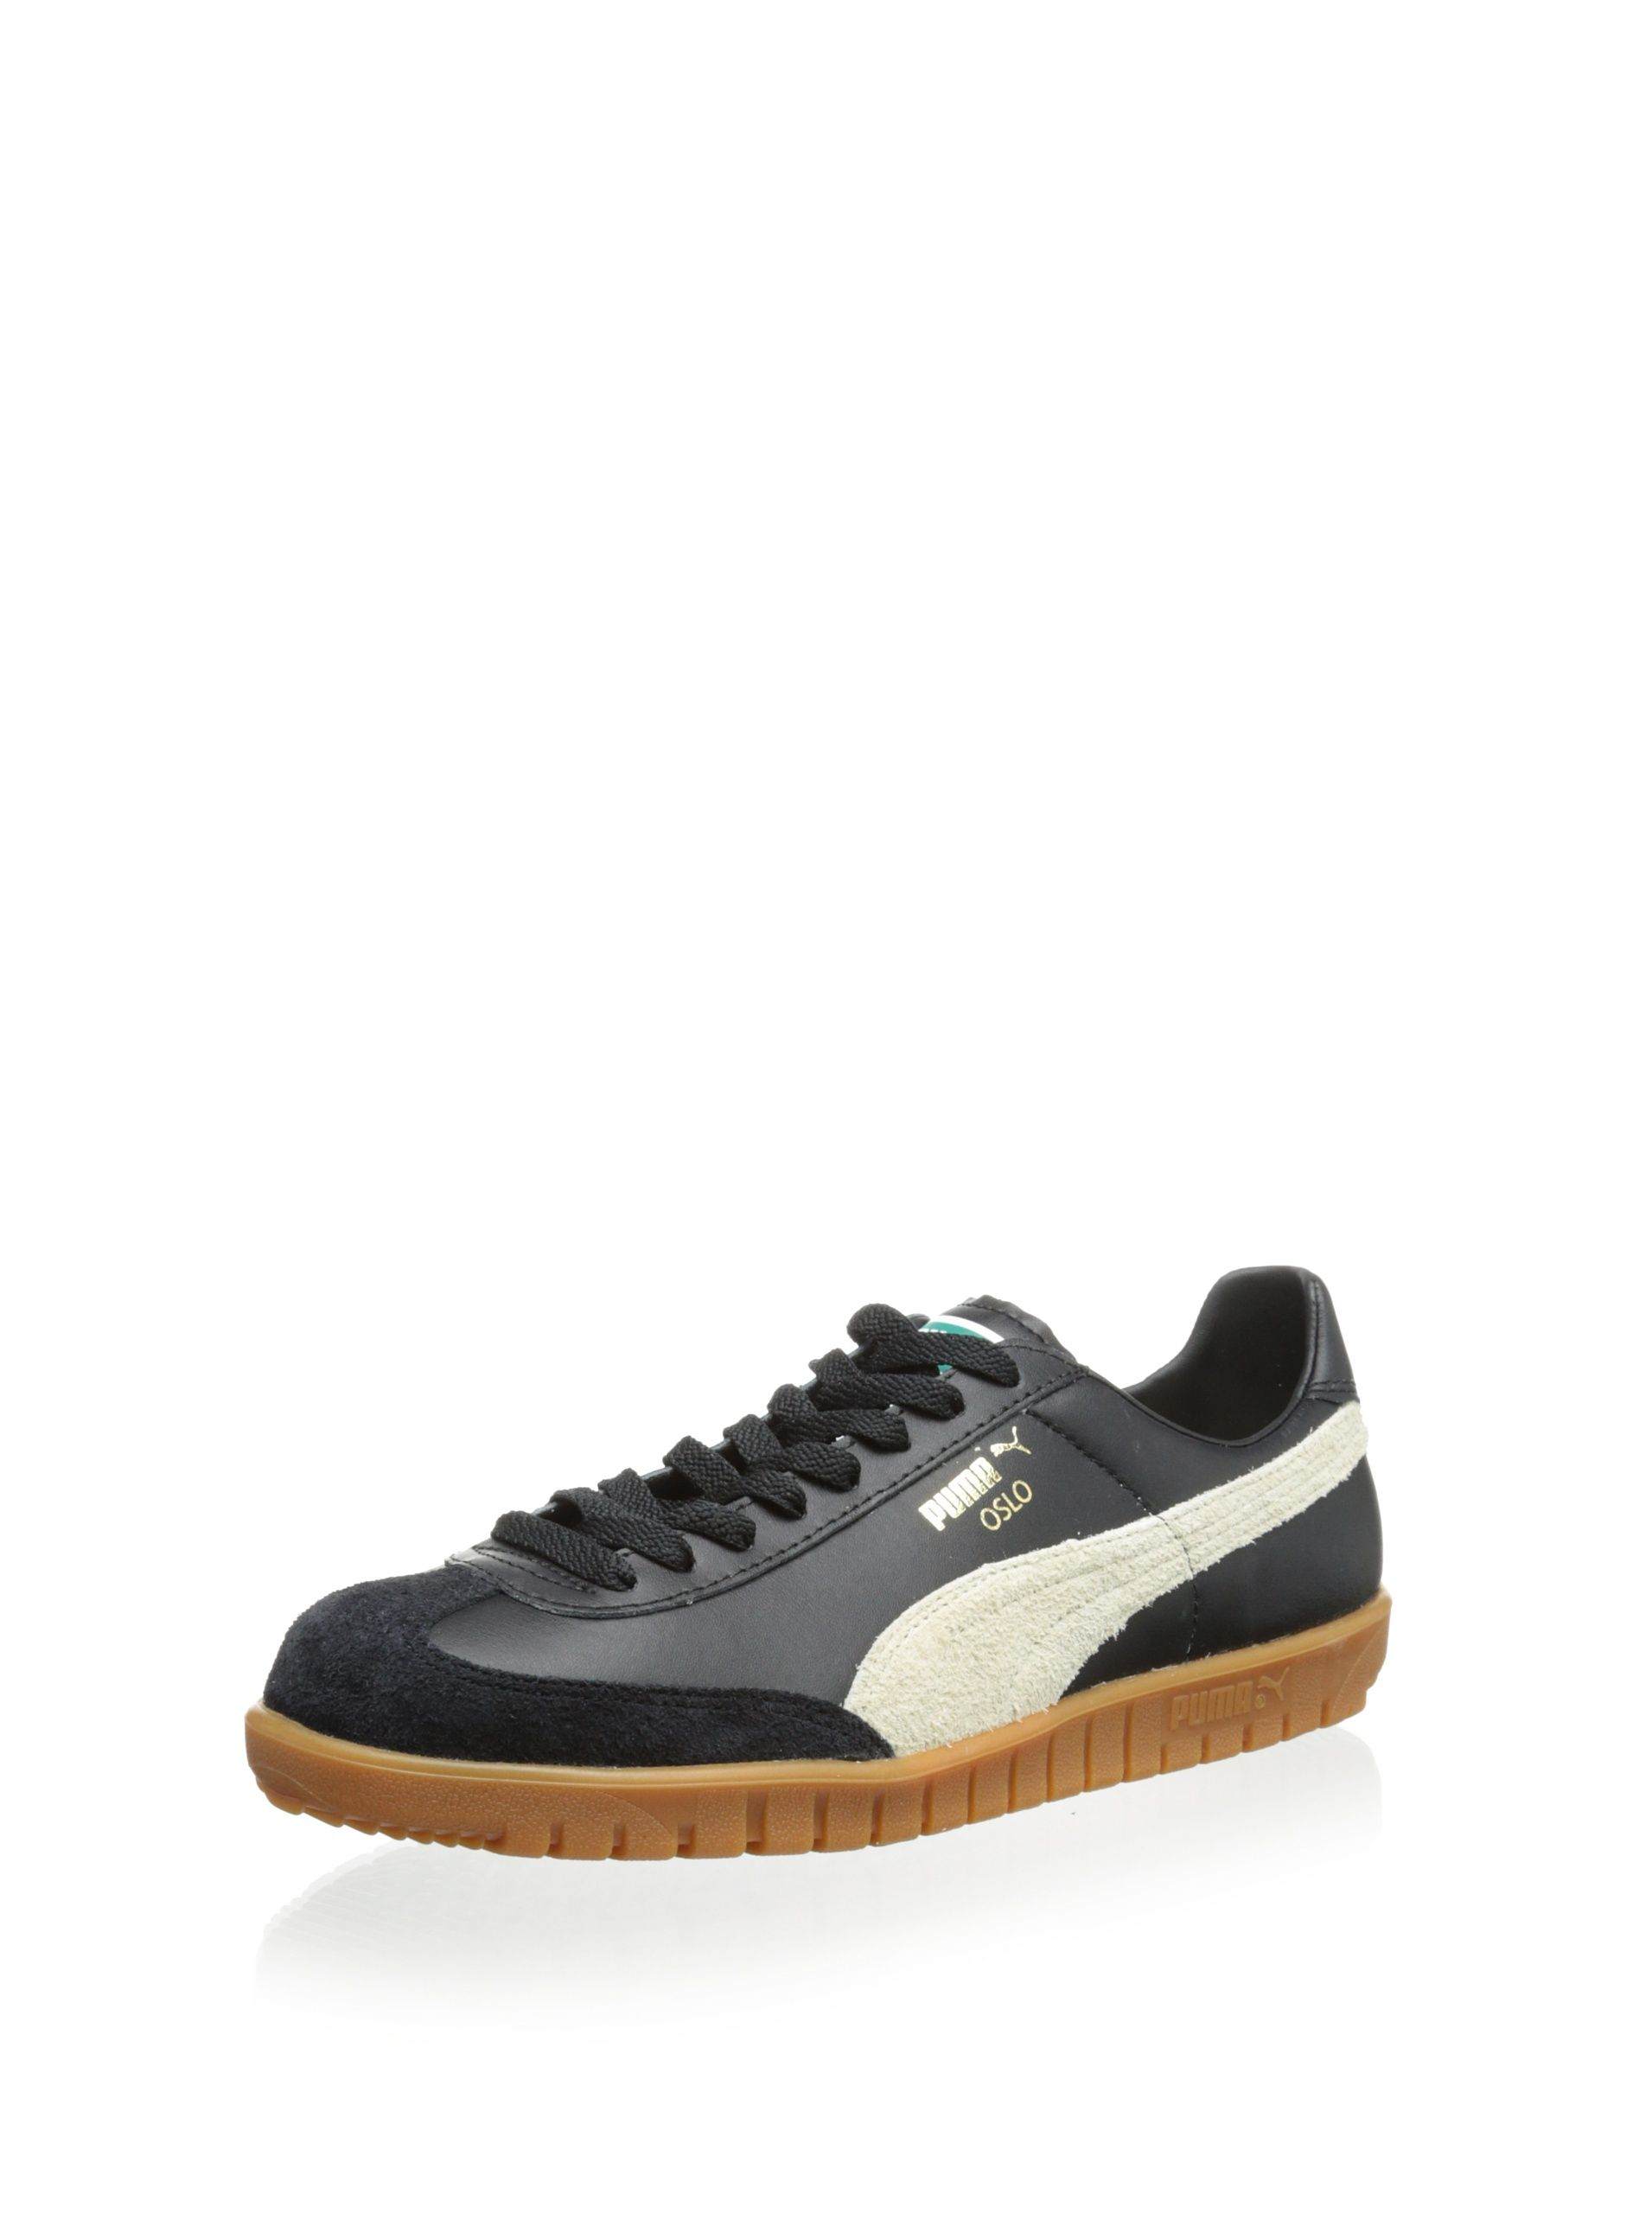 81c3879ae9d2 PUMA Oslo Leather Classic Sneaker (Black Whisper White) Sleek style  features suede overlays